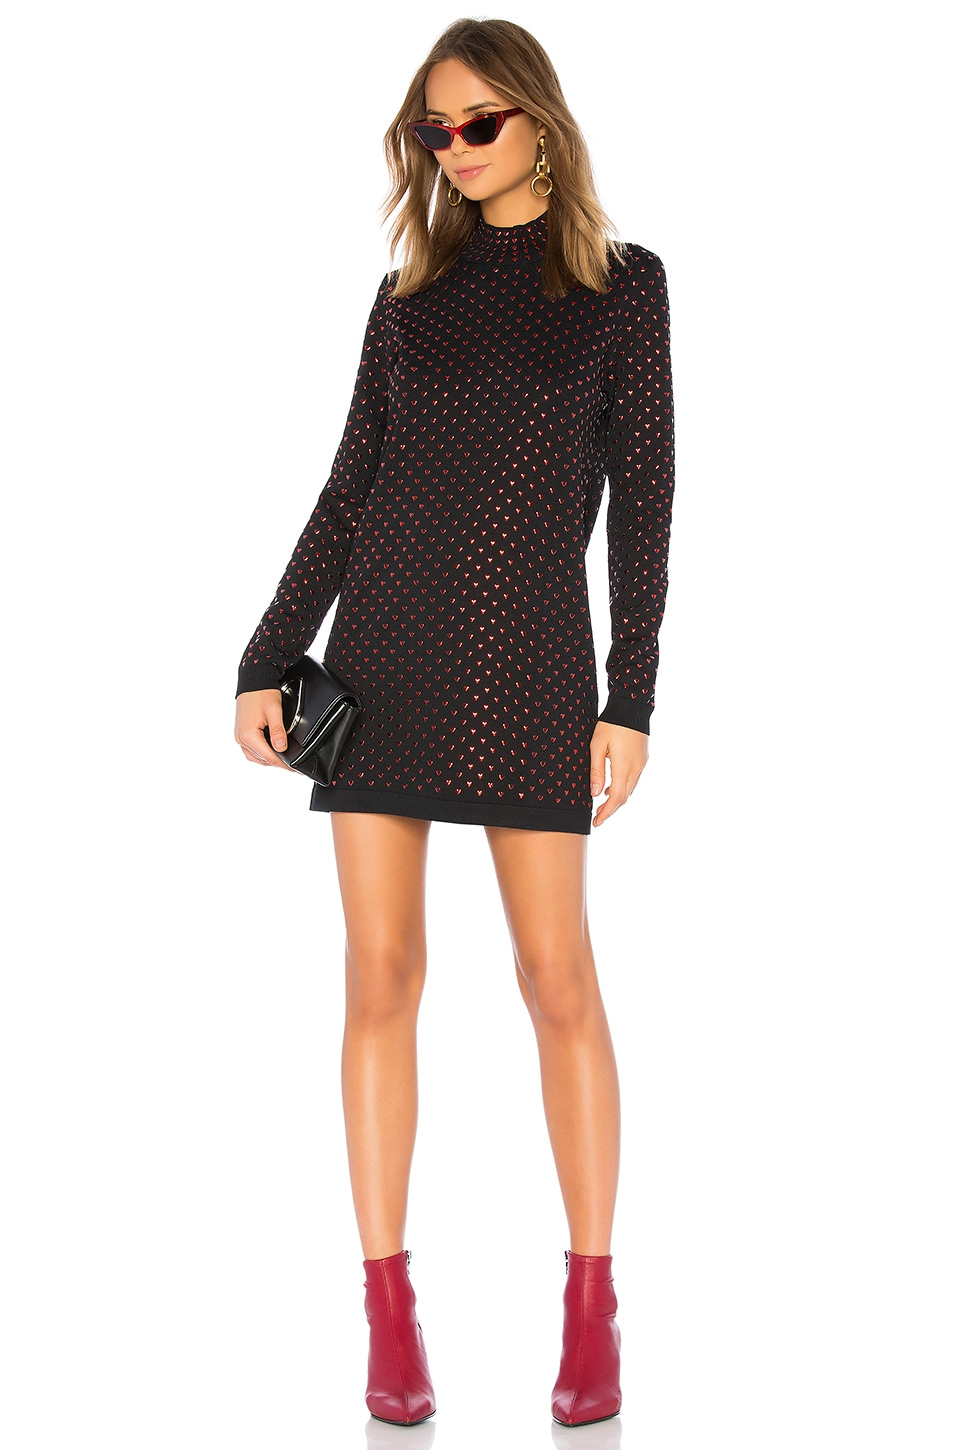 Adam Selman Sport Mock Neck Mini Dress in Black